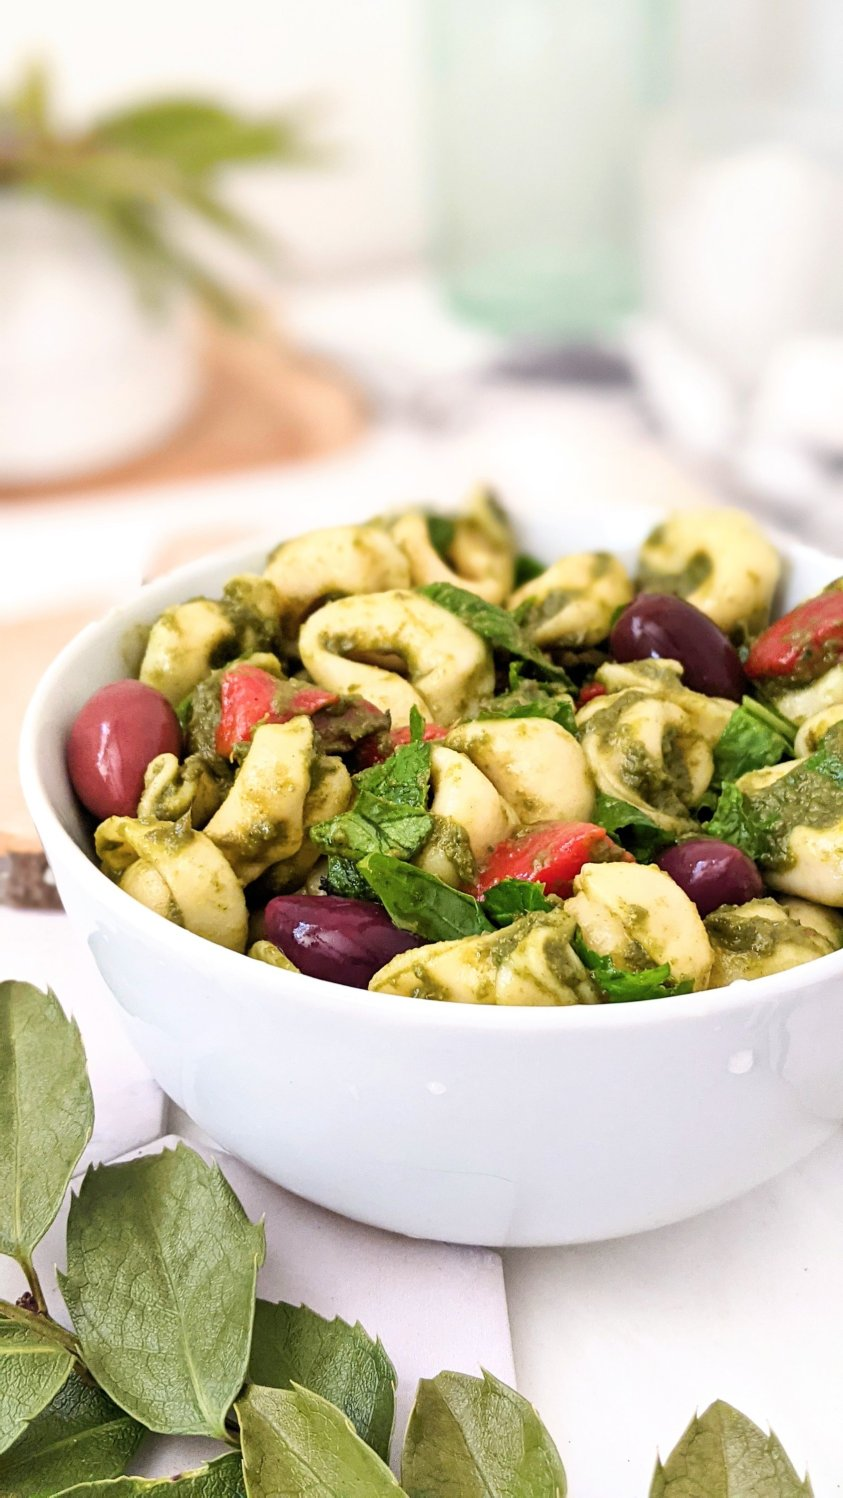 meatless tortellini salad with pesto dressing healthy vegetarian summer side salads entertaining recipes in half hour pasta salad recipes healthy basil dressing